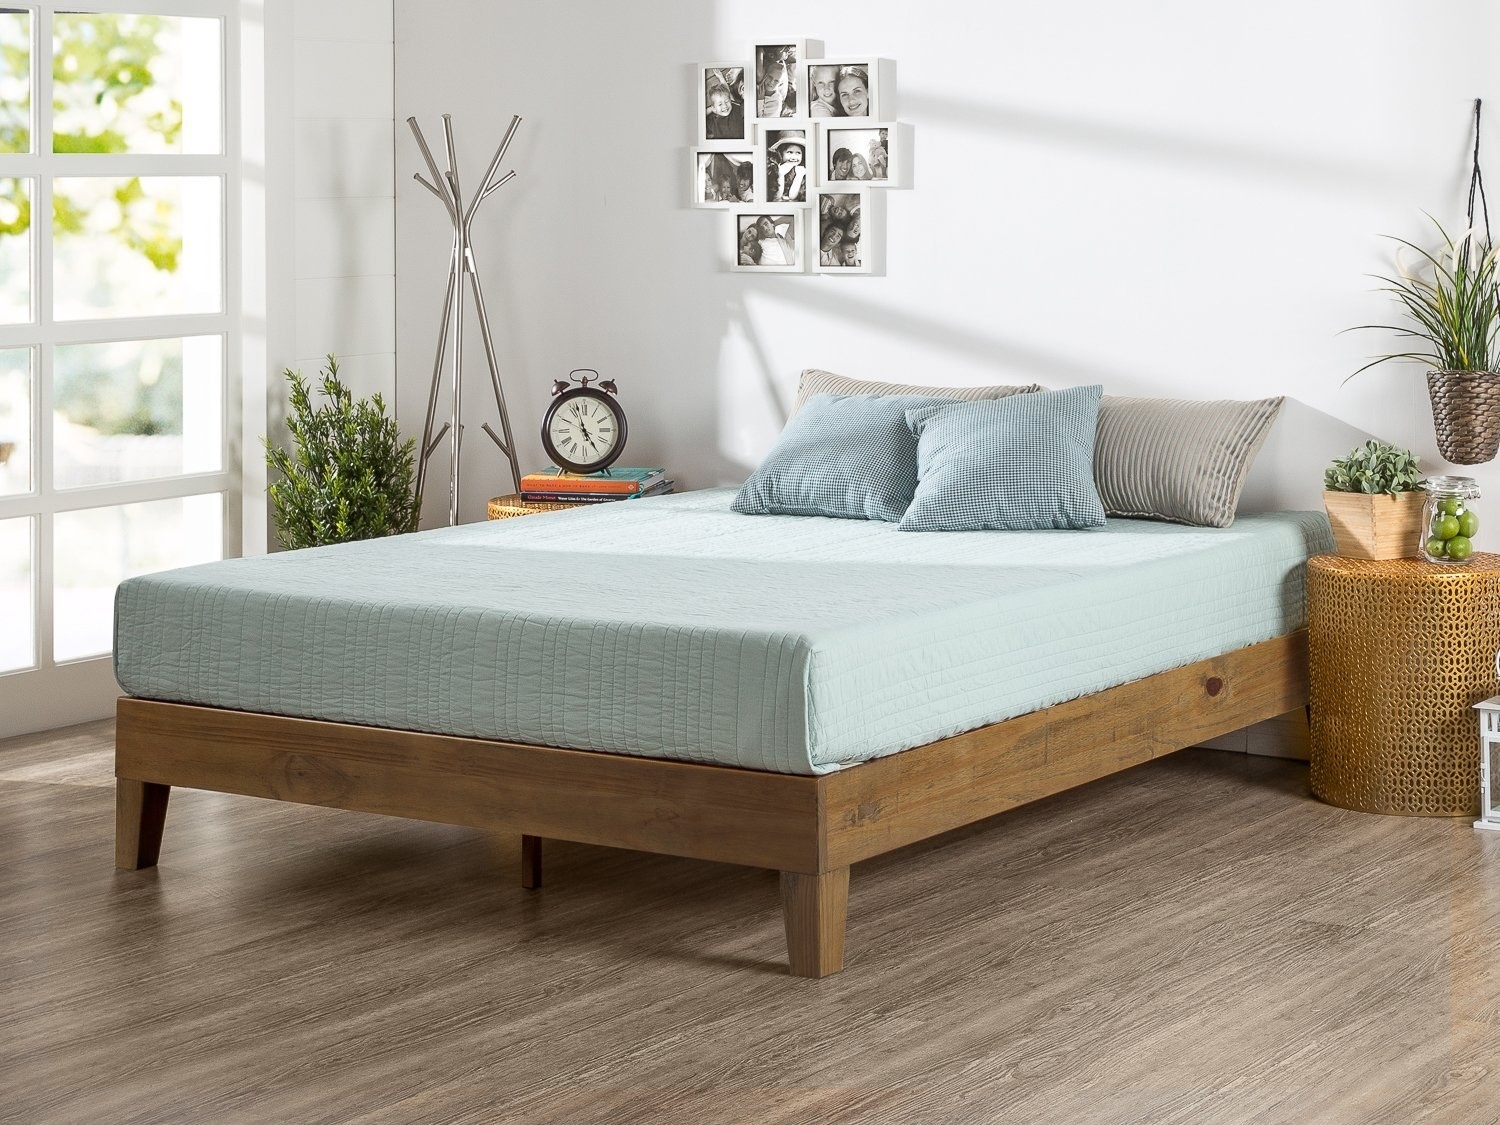 side view of the wooden bed frame